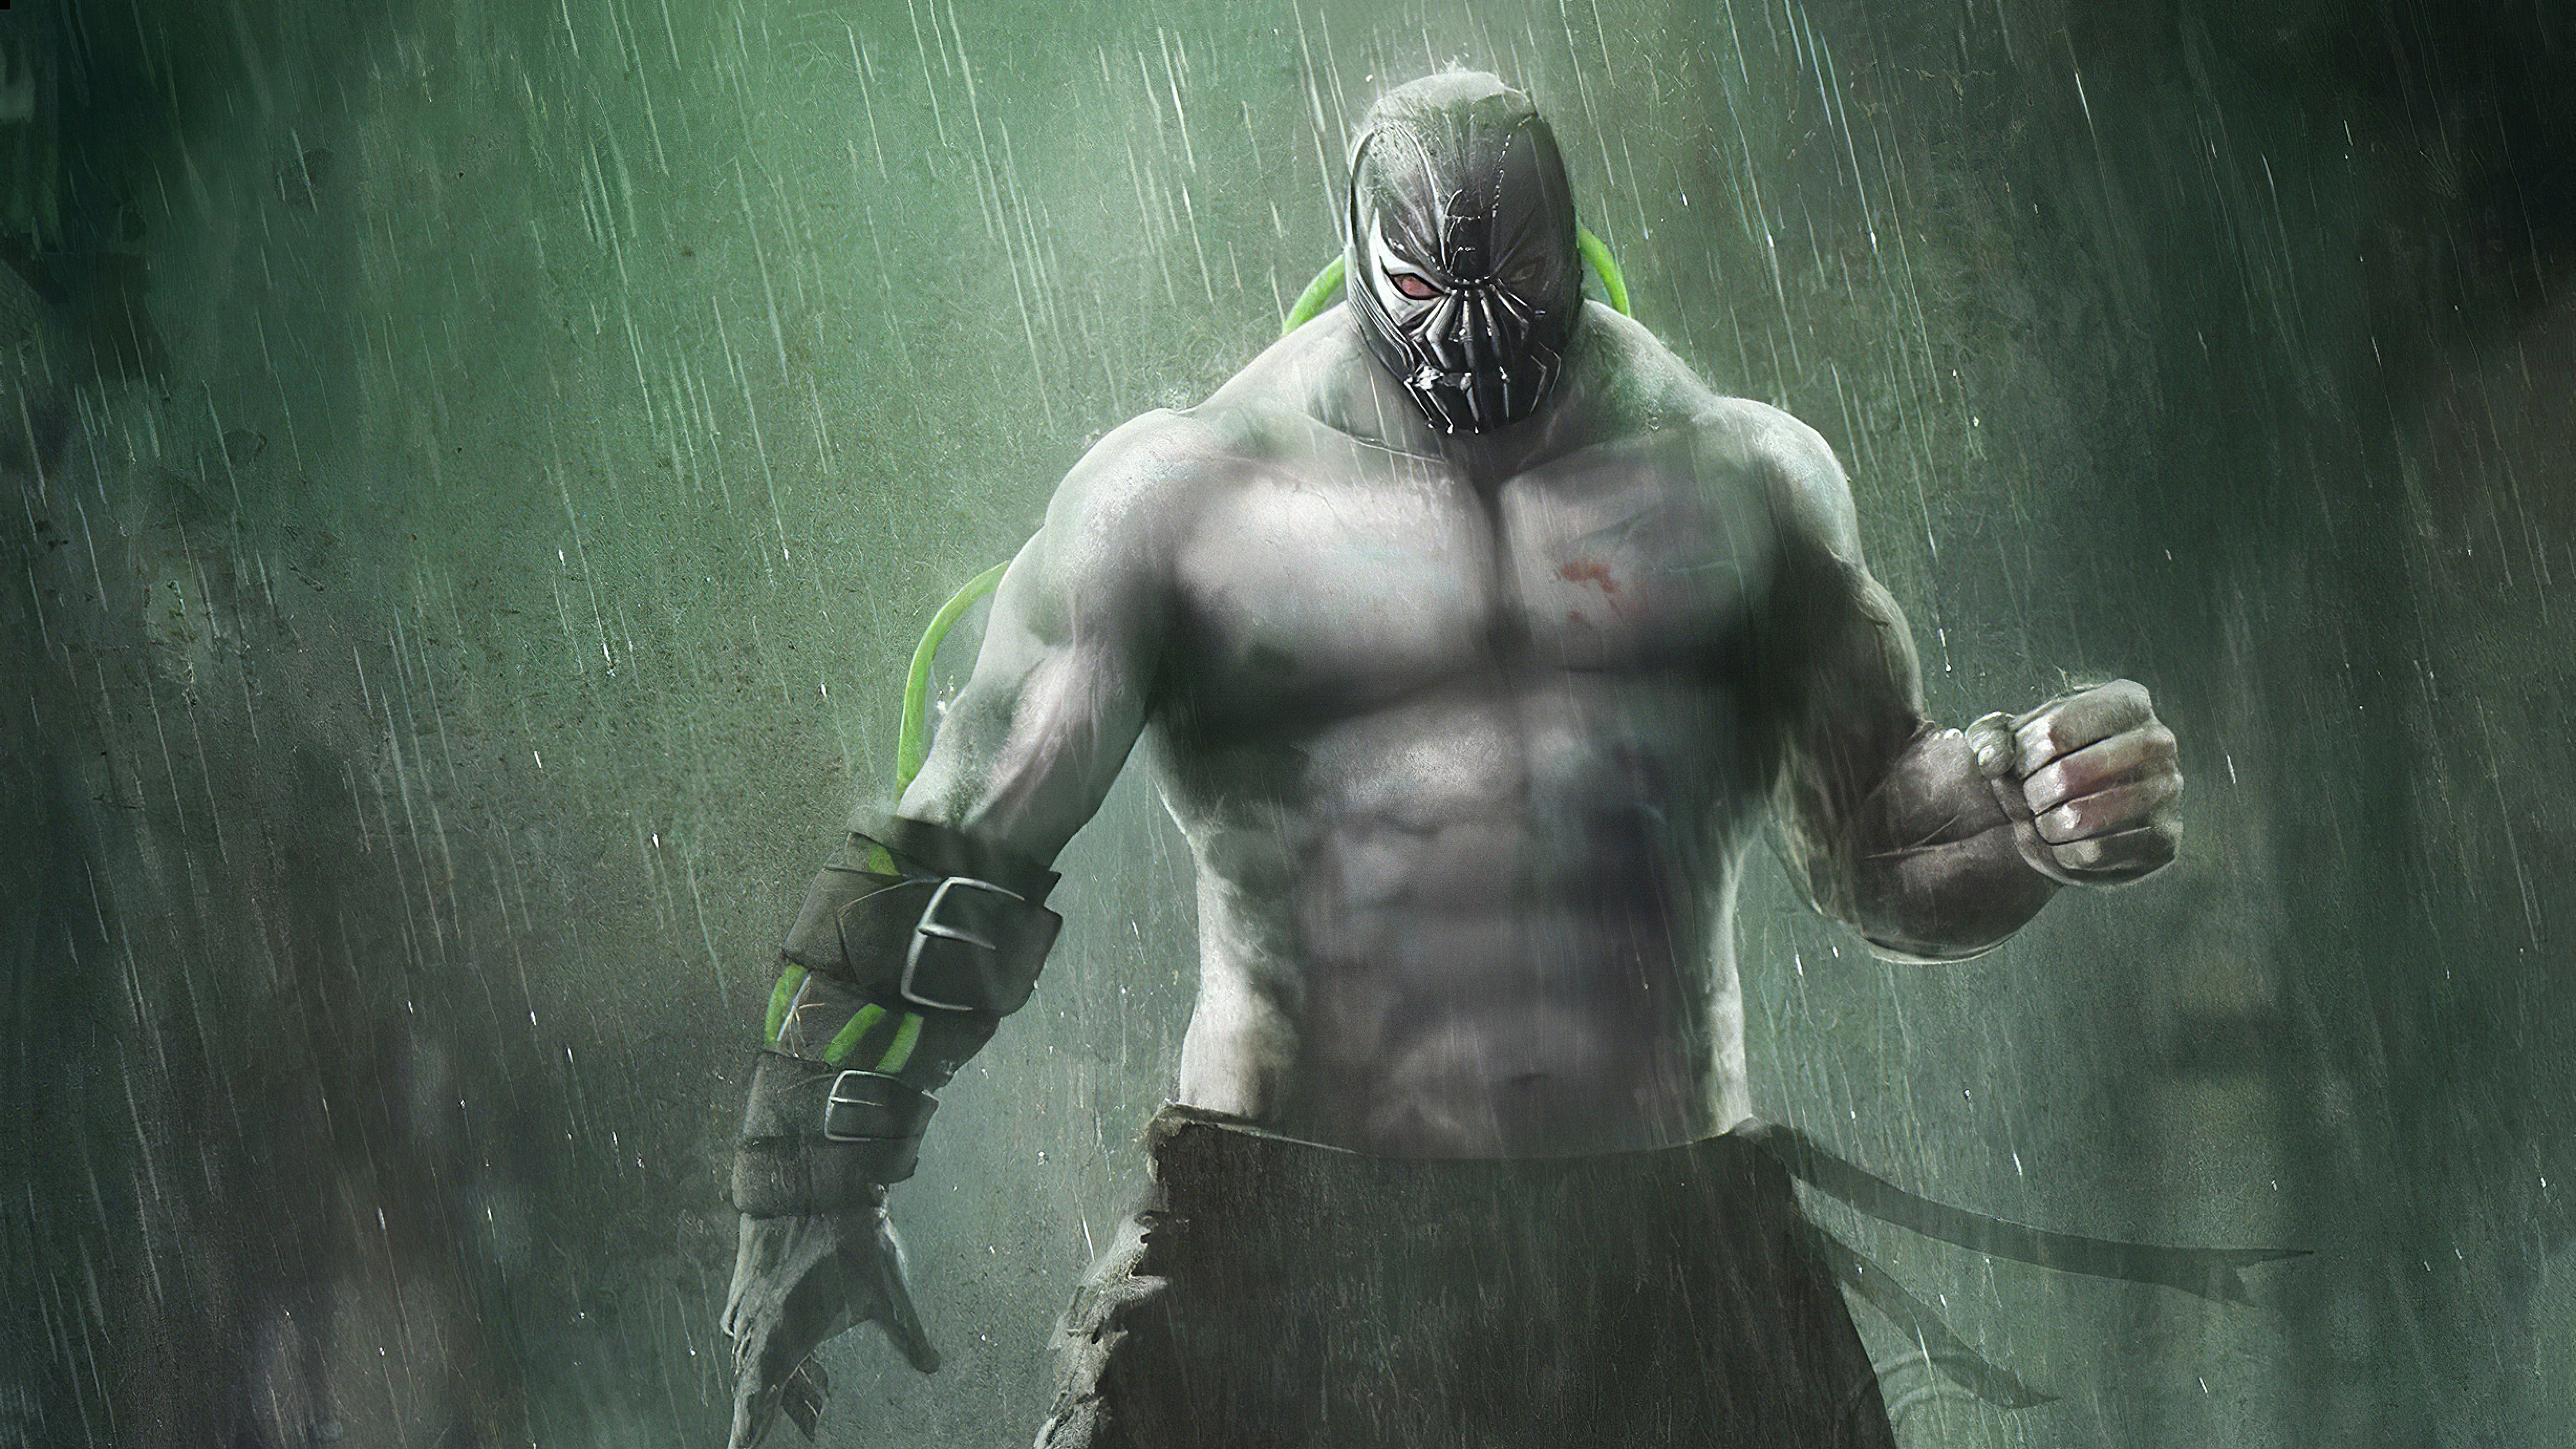 bane art 1572368488 - Bane Art - superheroes wallpapers, hd-wallpapers, deviantart wallpapers, bane wallpapers, artwork wallpapers, 4k-wallpapers